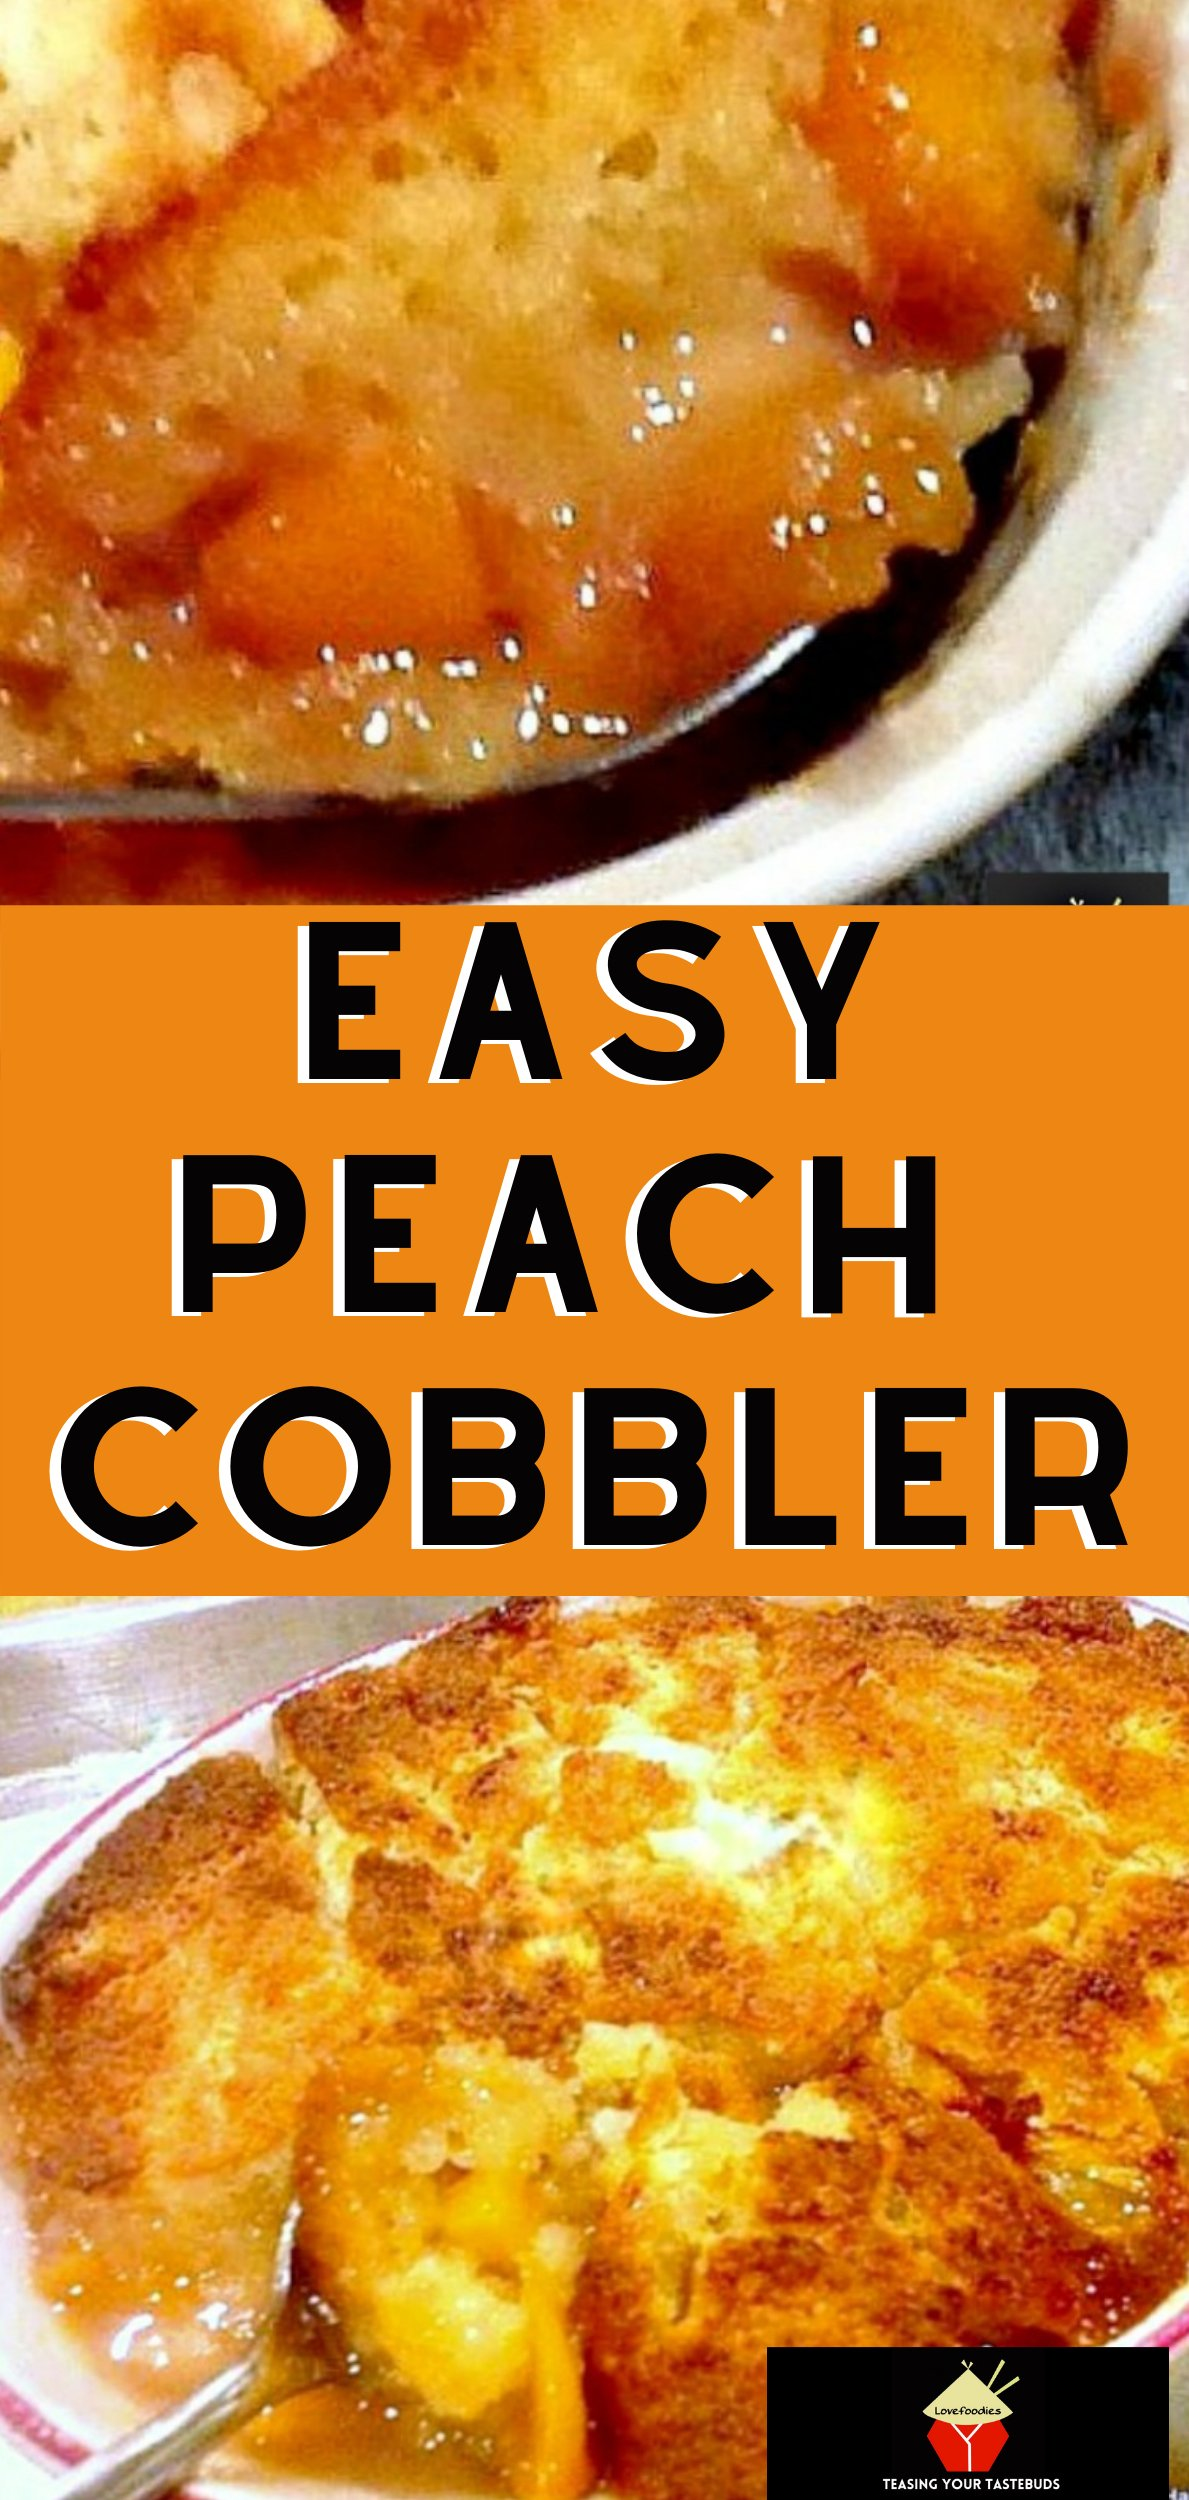 Peach Cobbler. This works fantastic with any of your favorite fruits! A really pleasing dessert best served warm with a blob of your favorite ice cream